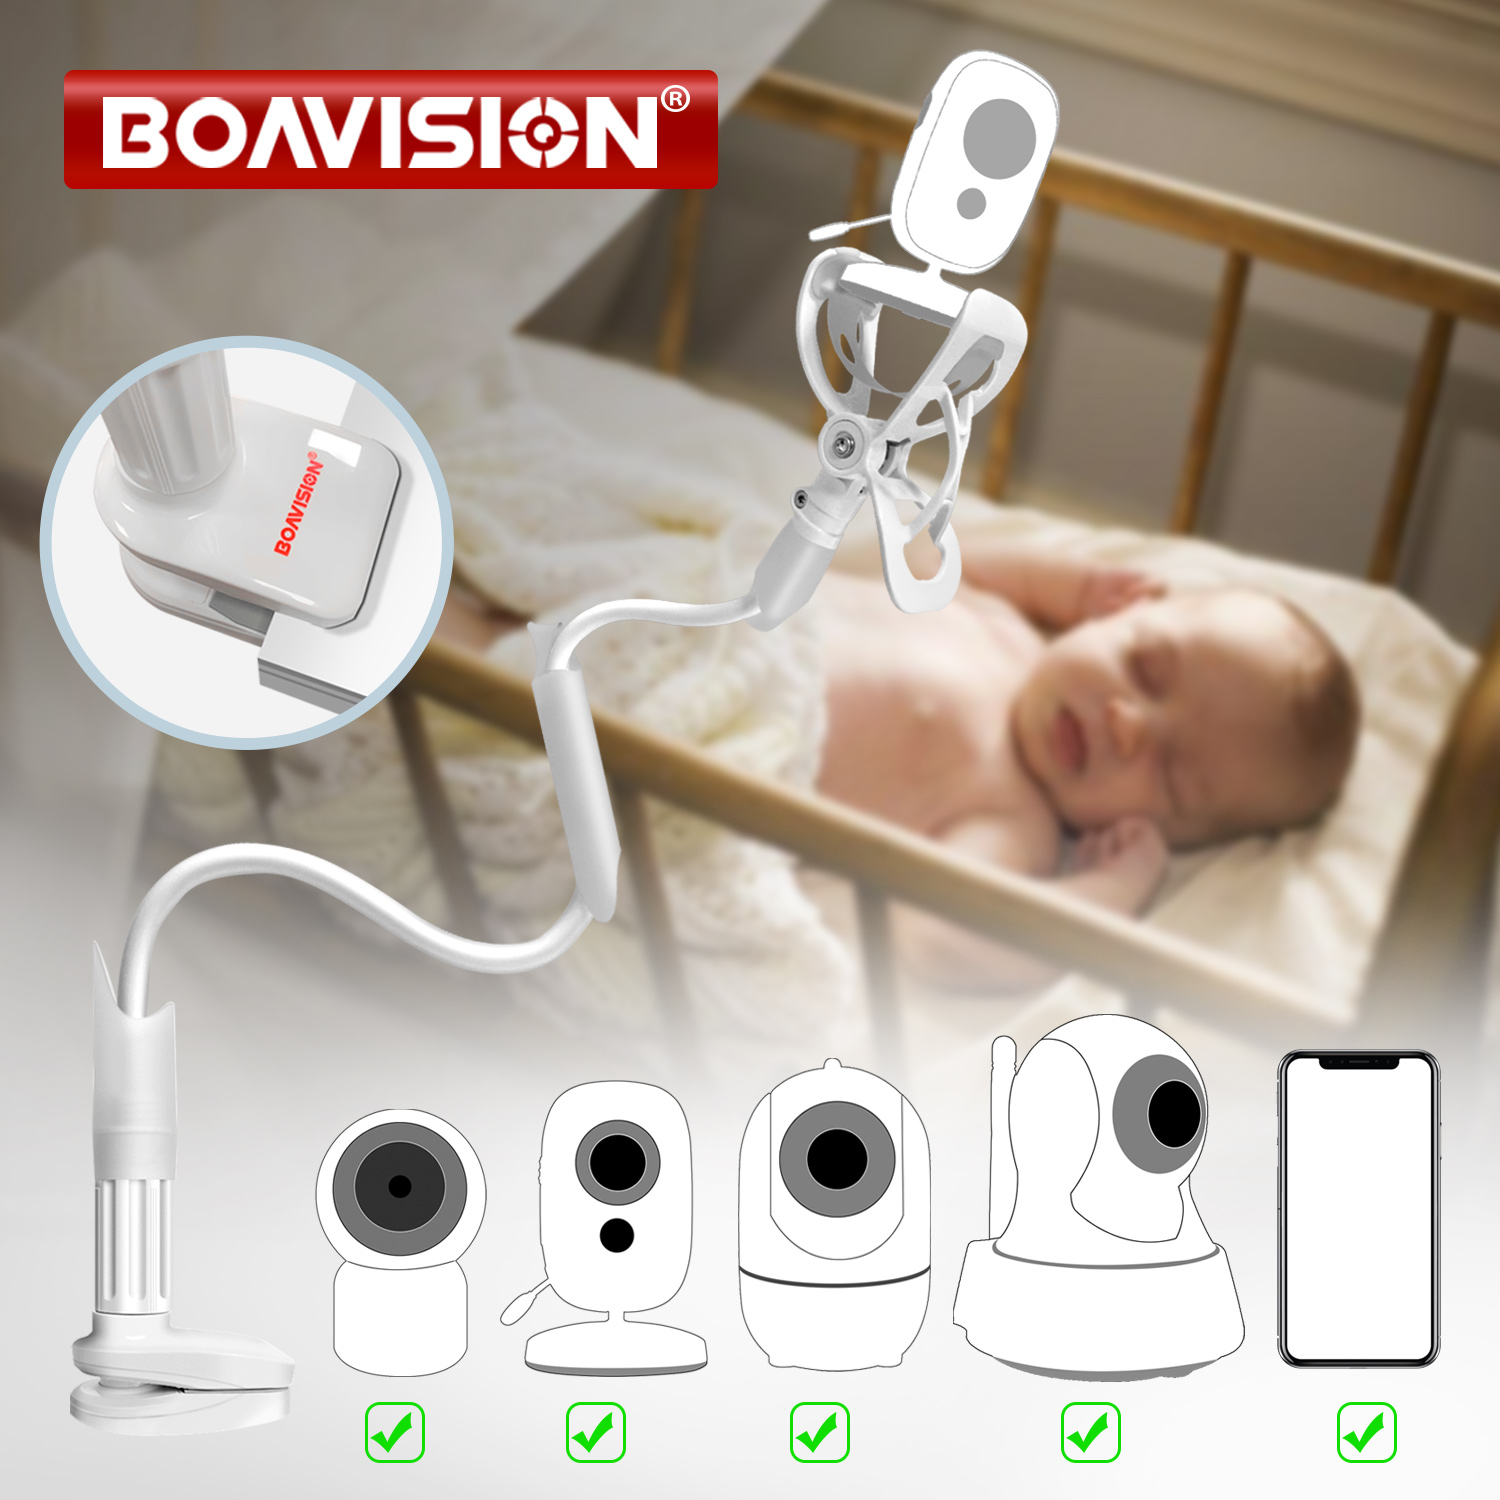 No Drilling Smartphone Stand Holder Flexible Baby Camera Mount Shelf for Your Baby Universal Baby Video Monitor Holder